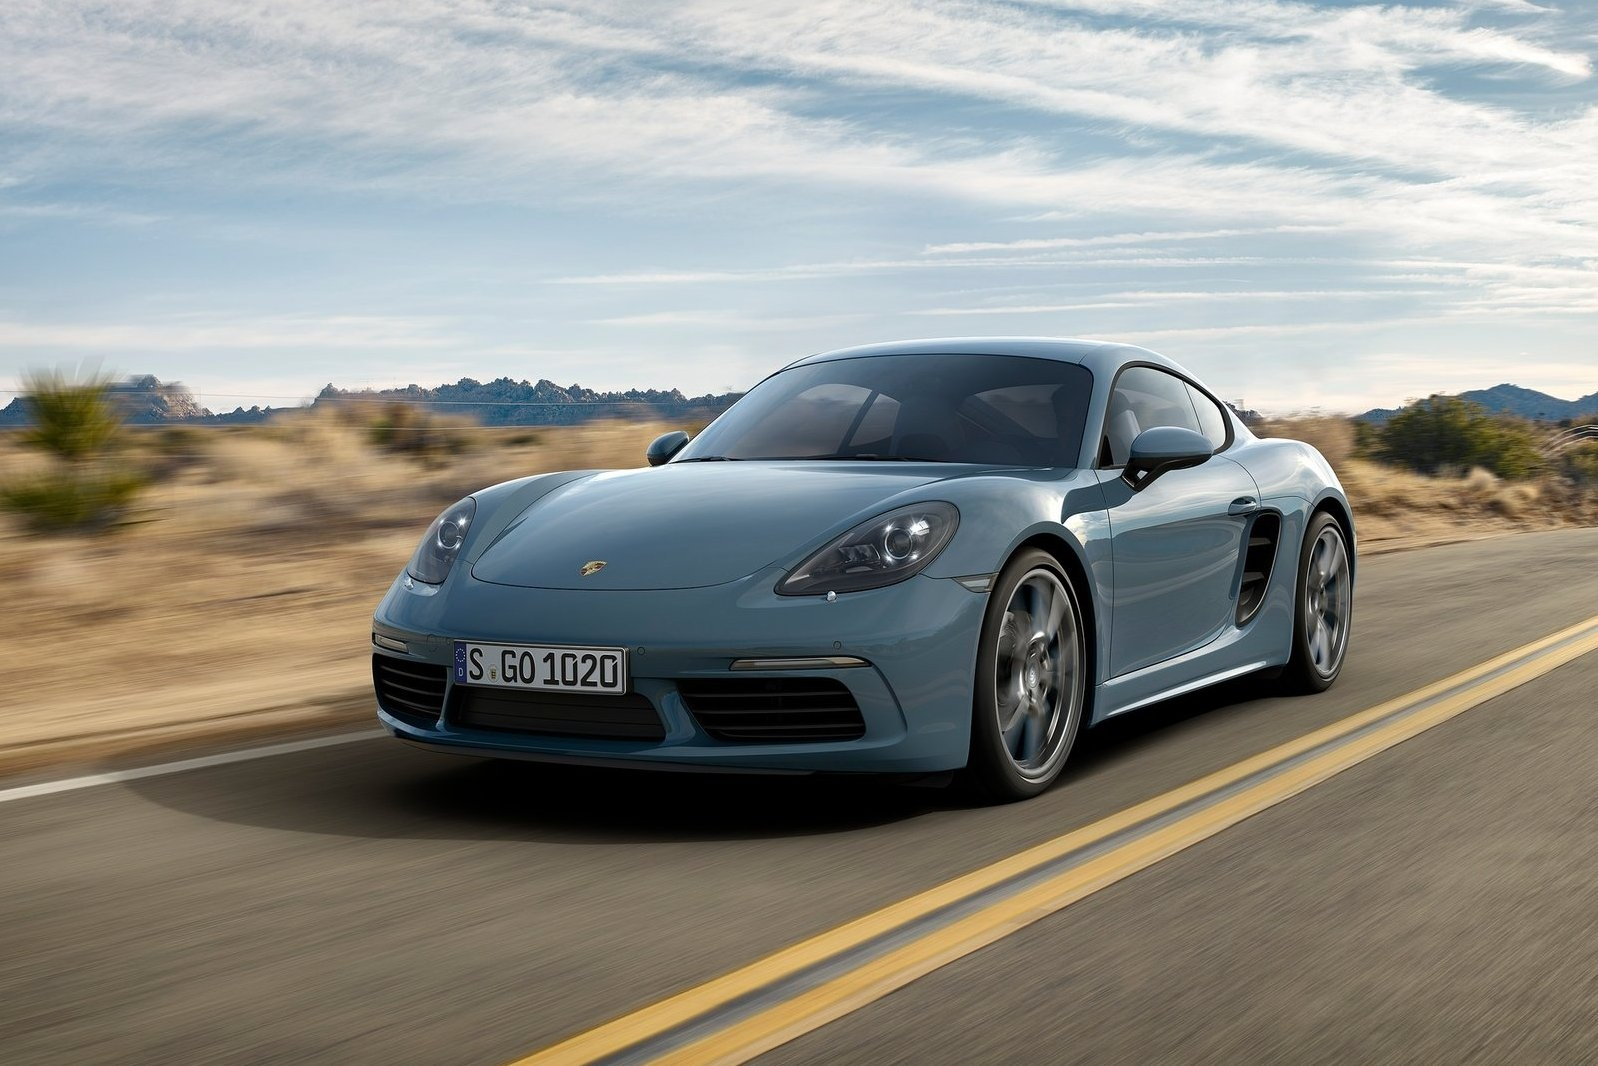 2017 Porsche Cayman photo - 2